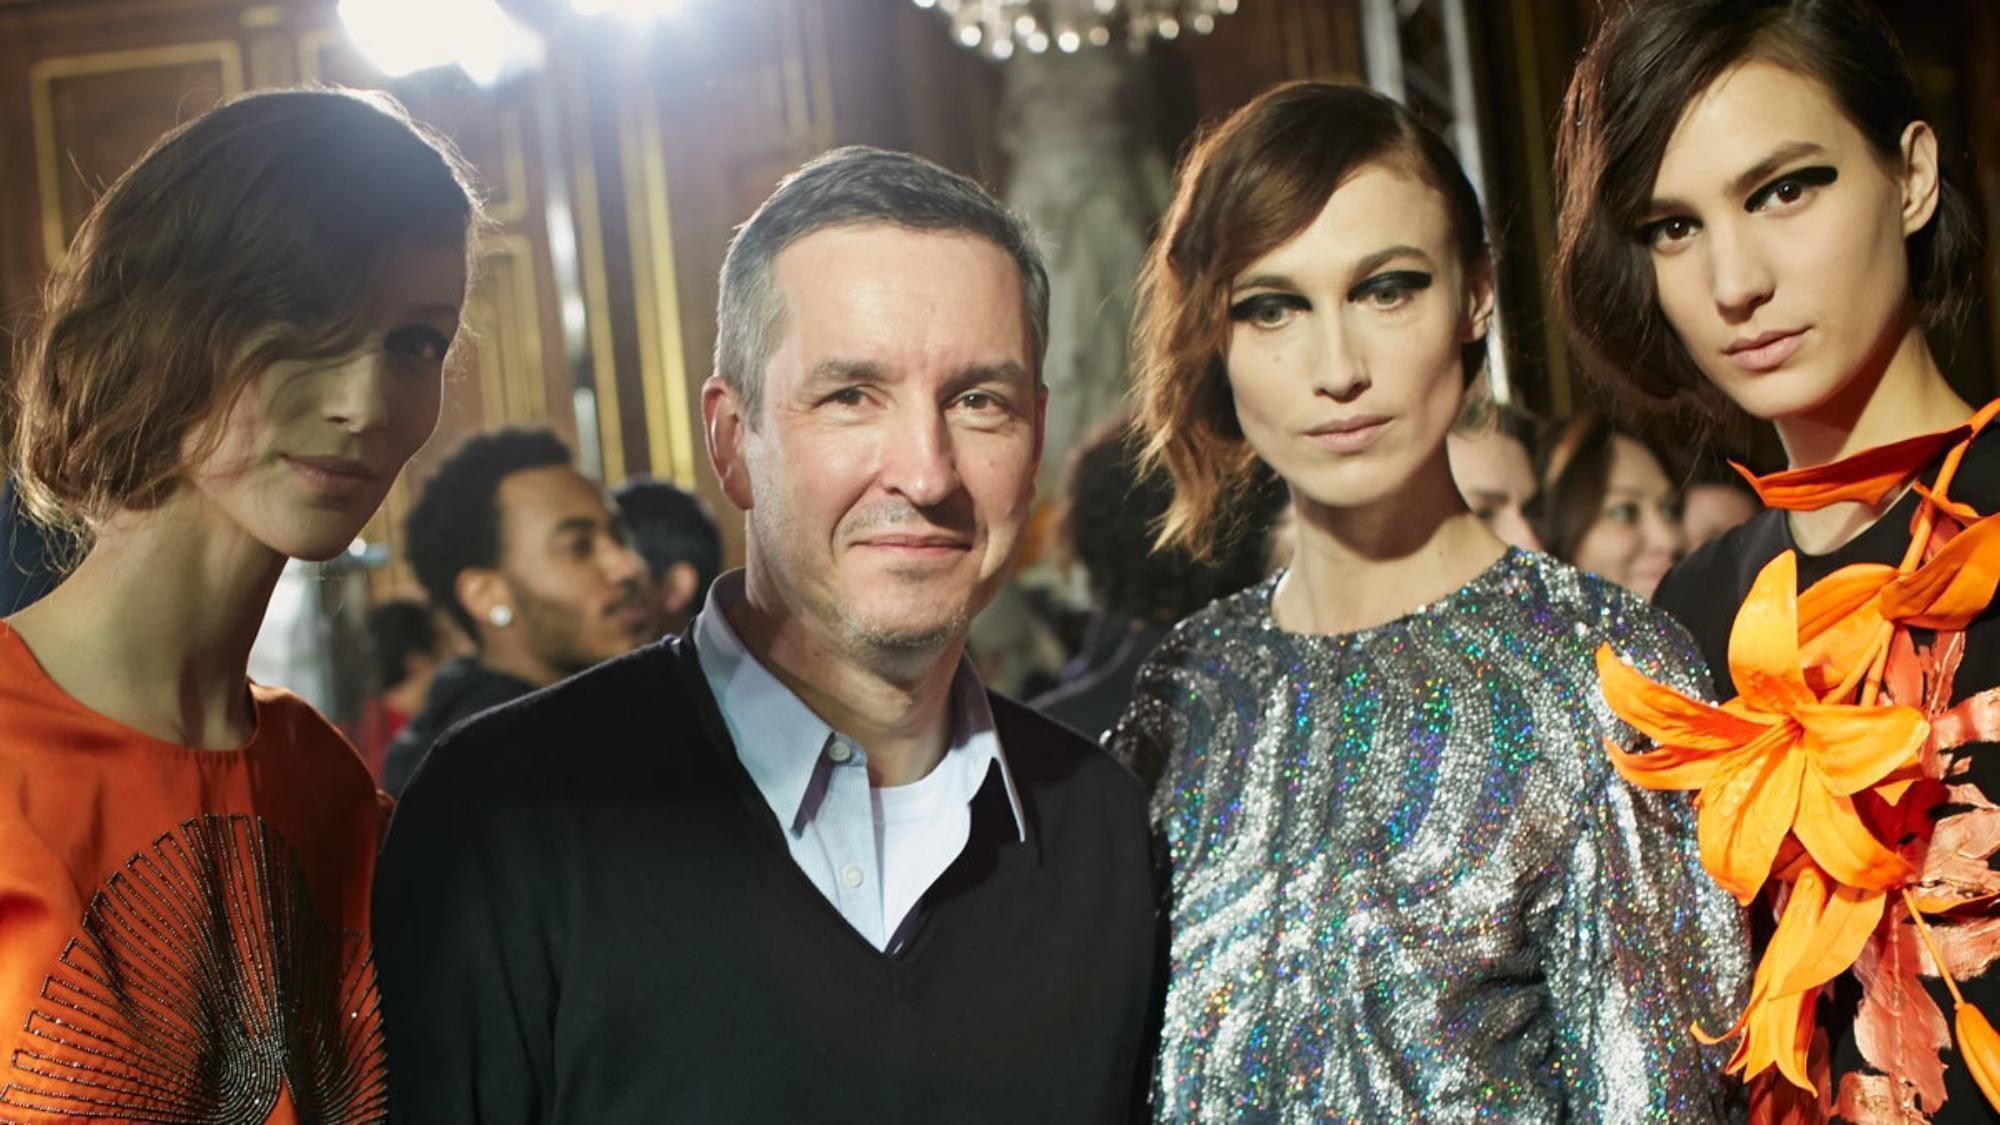 watch every dries van noten fashion show since 1986